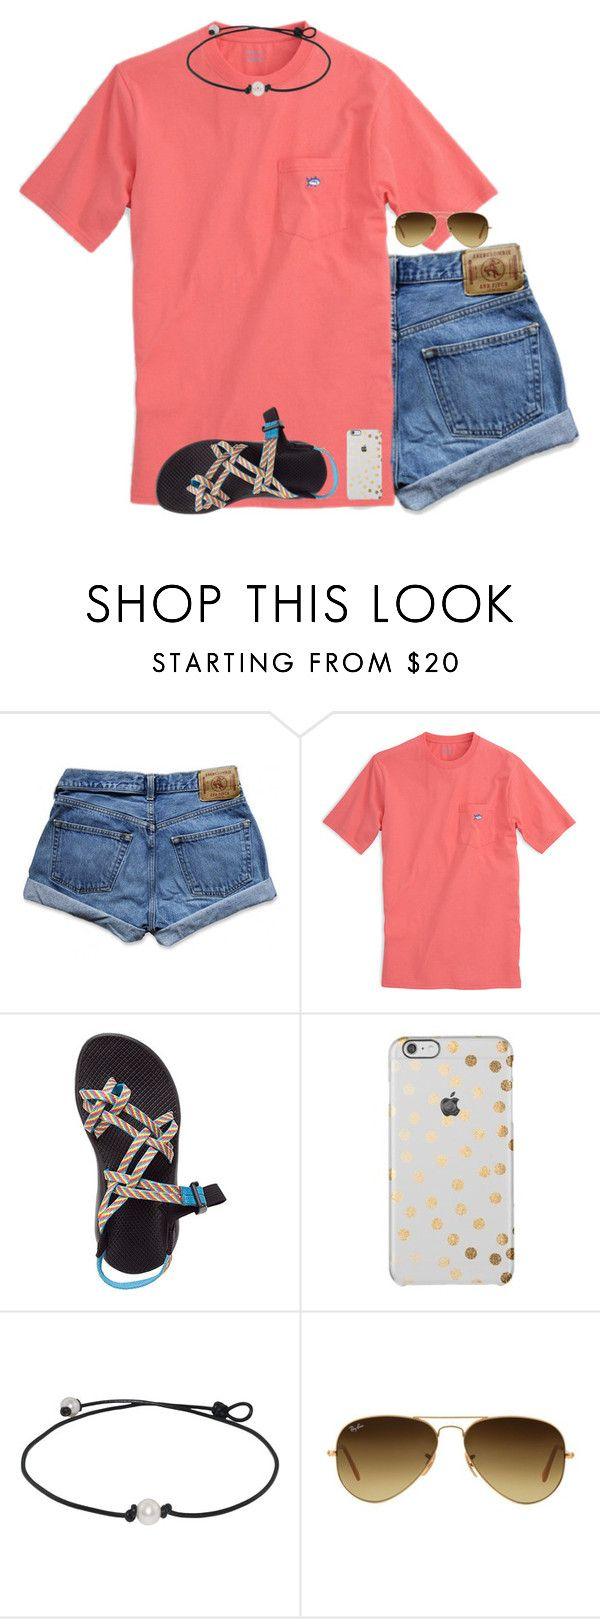 """Are y'all on spring break☀️"" by anappleadaykeepsfashionuptodate ❤ liked on Polyvore featuring Abercrombie & Fitch, Southern Tide, Chaco and Ray-Ban"